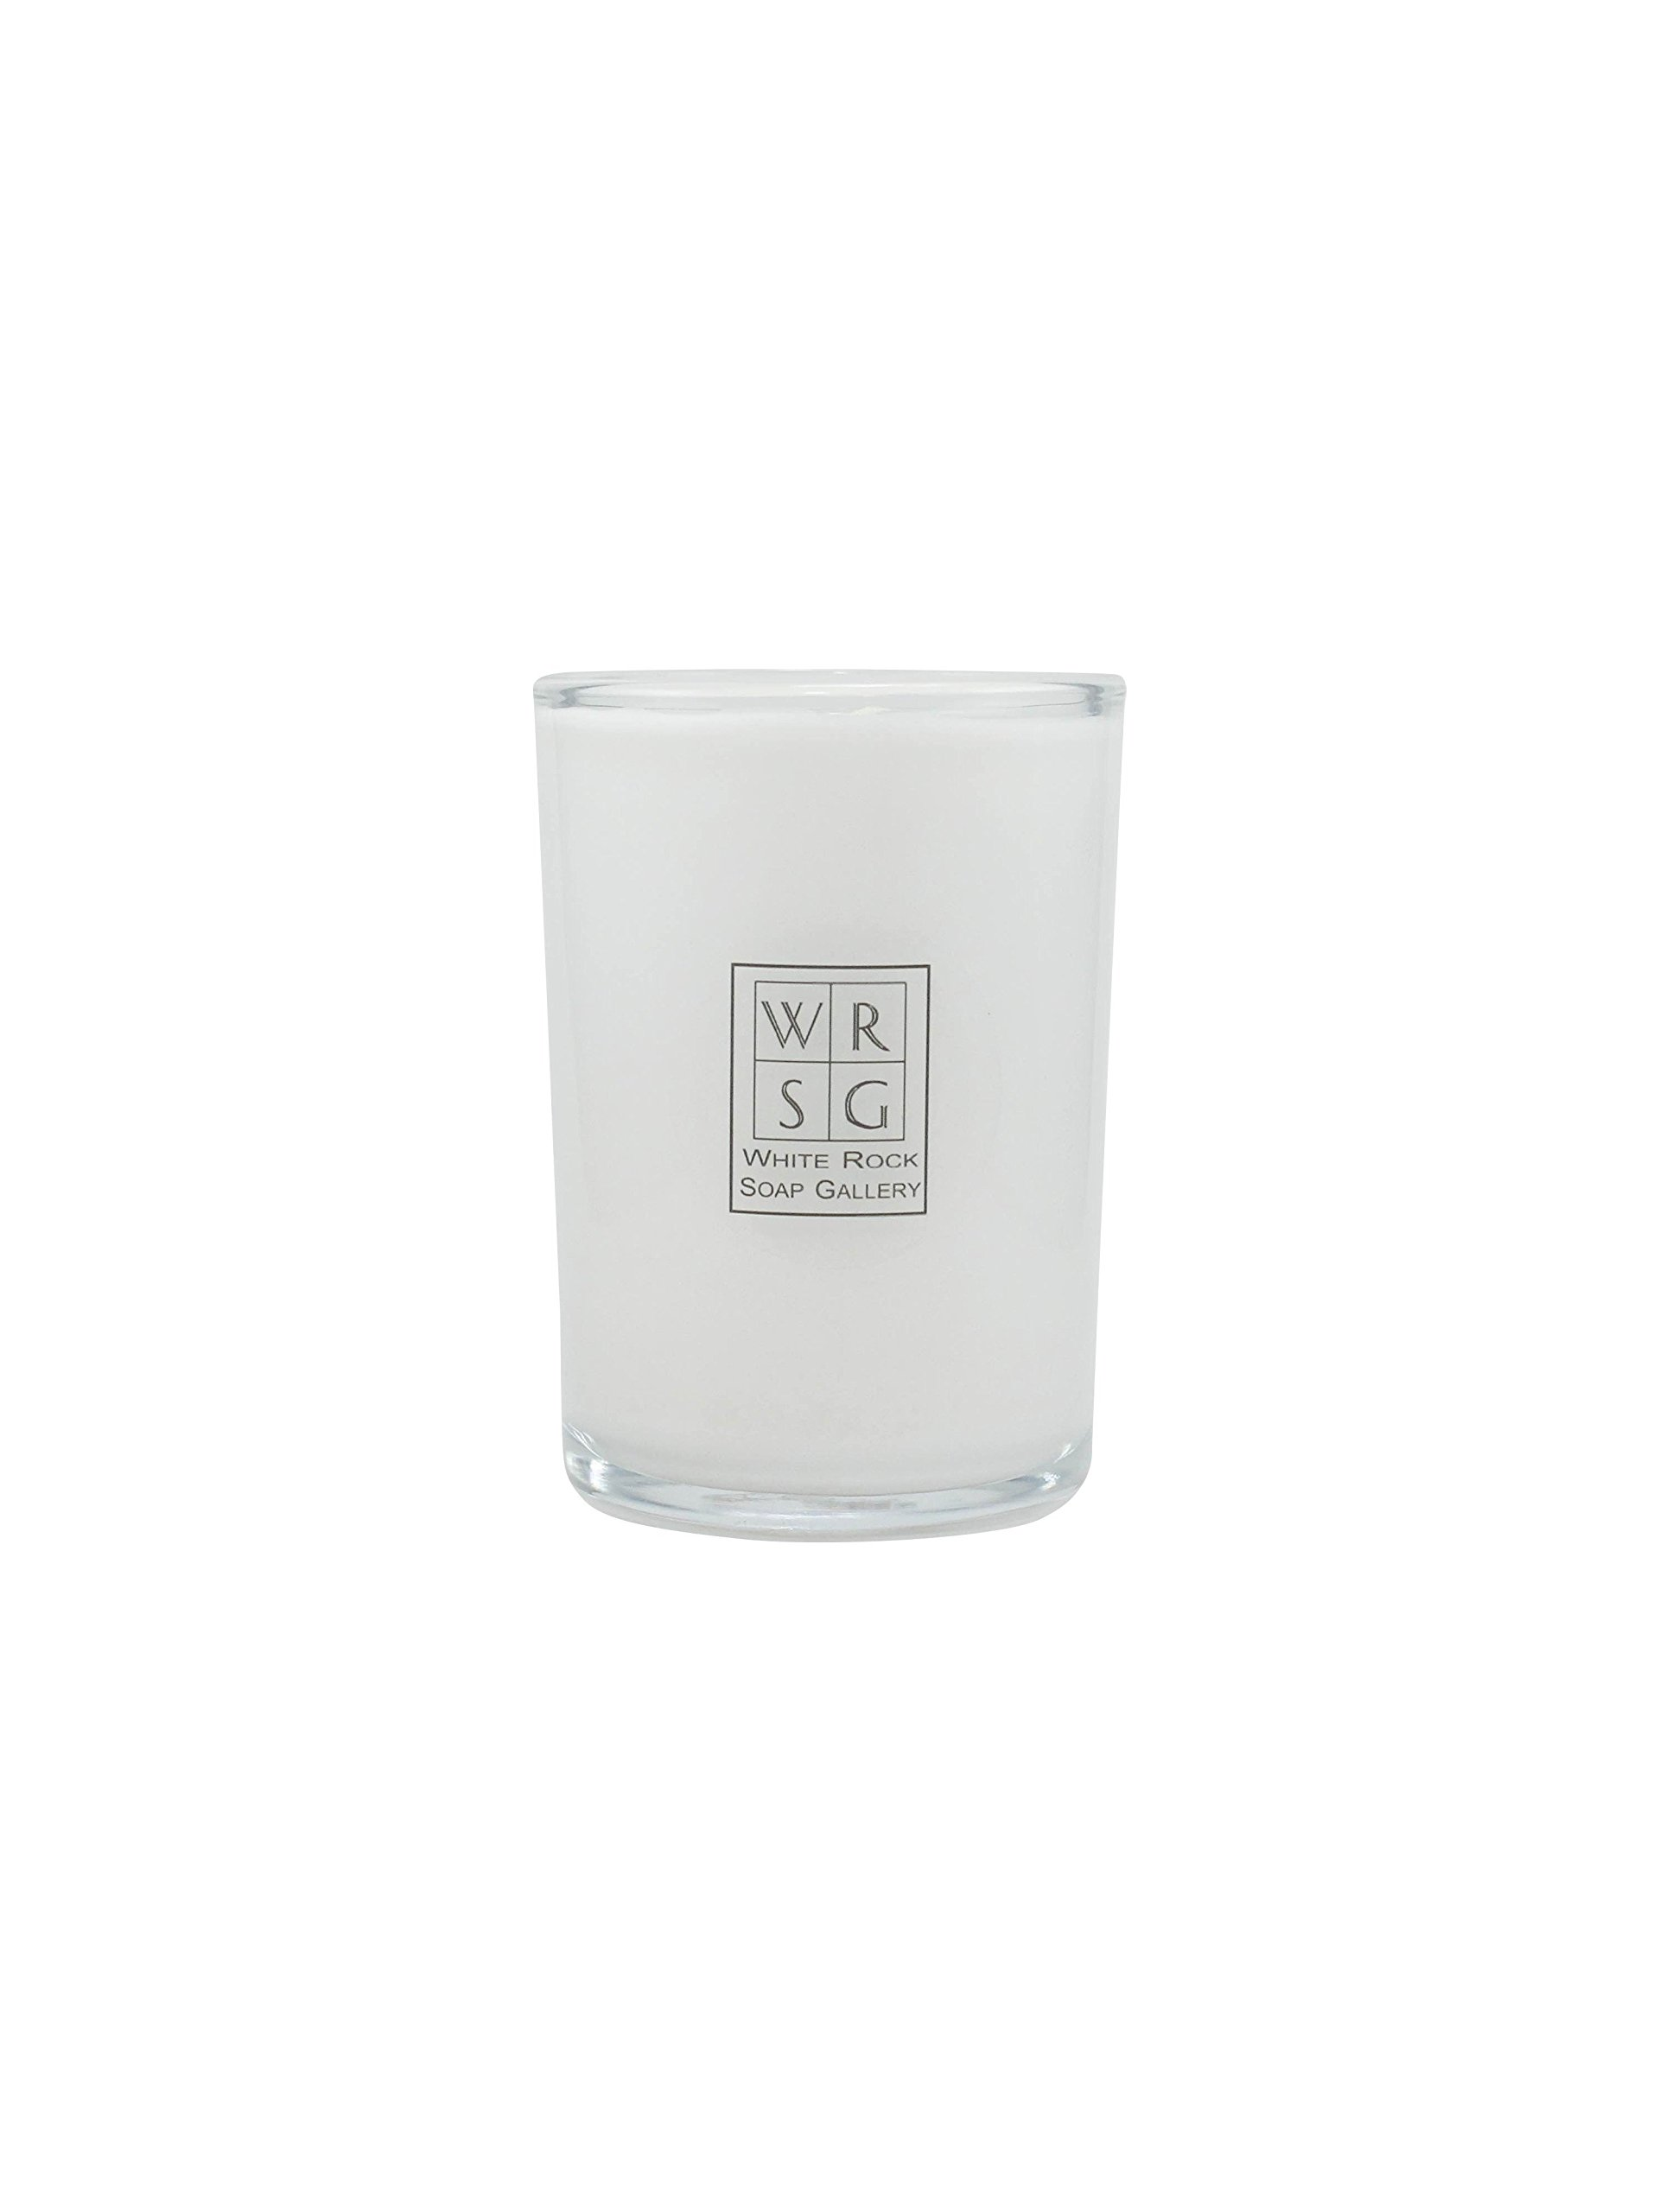 8 oz Glass Soy Wax Candle by White Rock Soap Galery